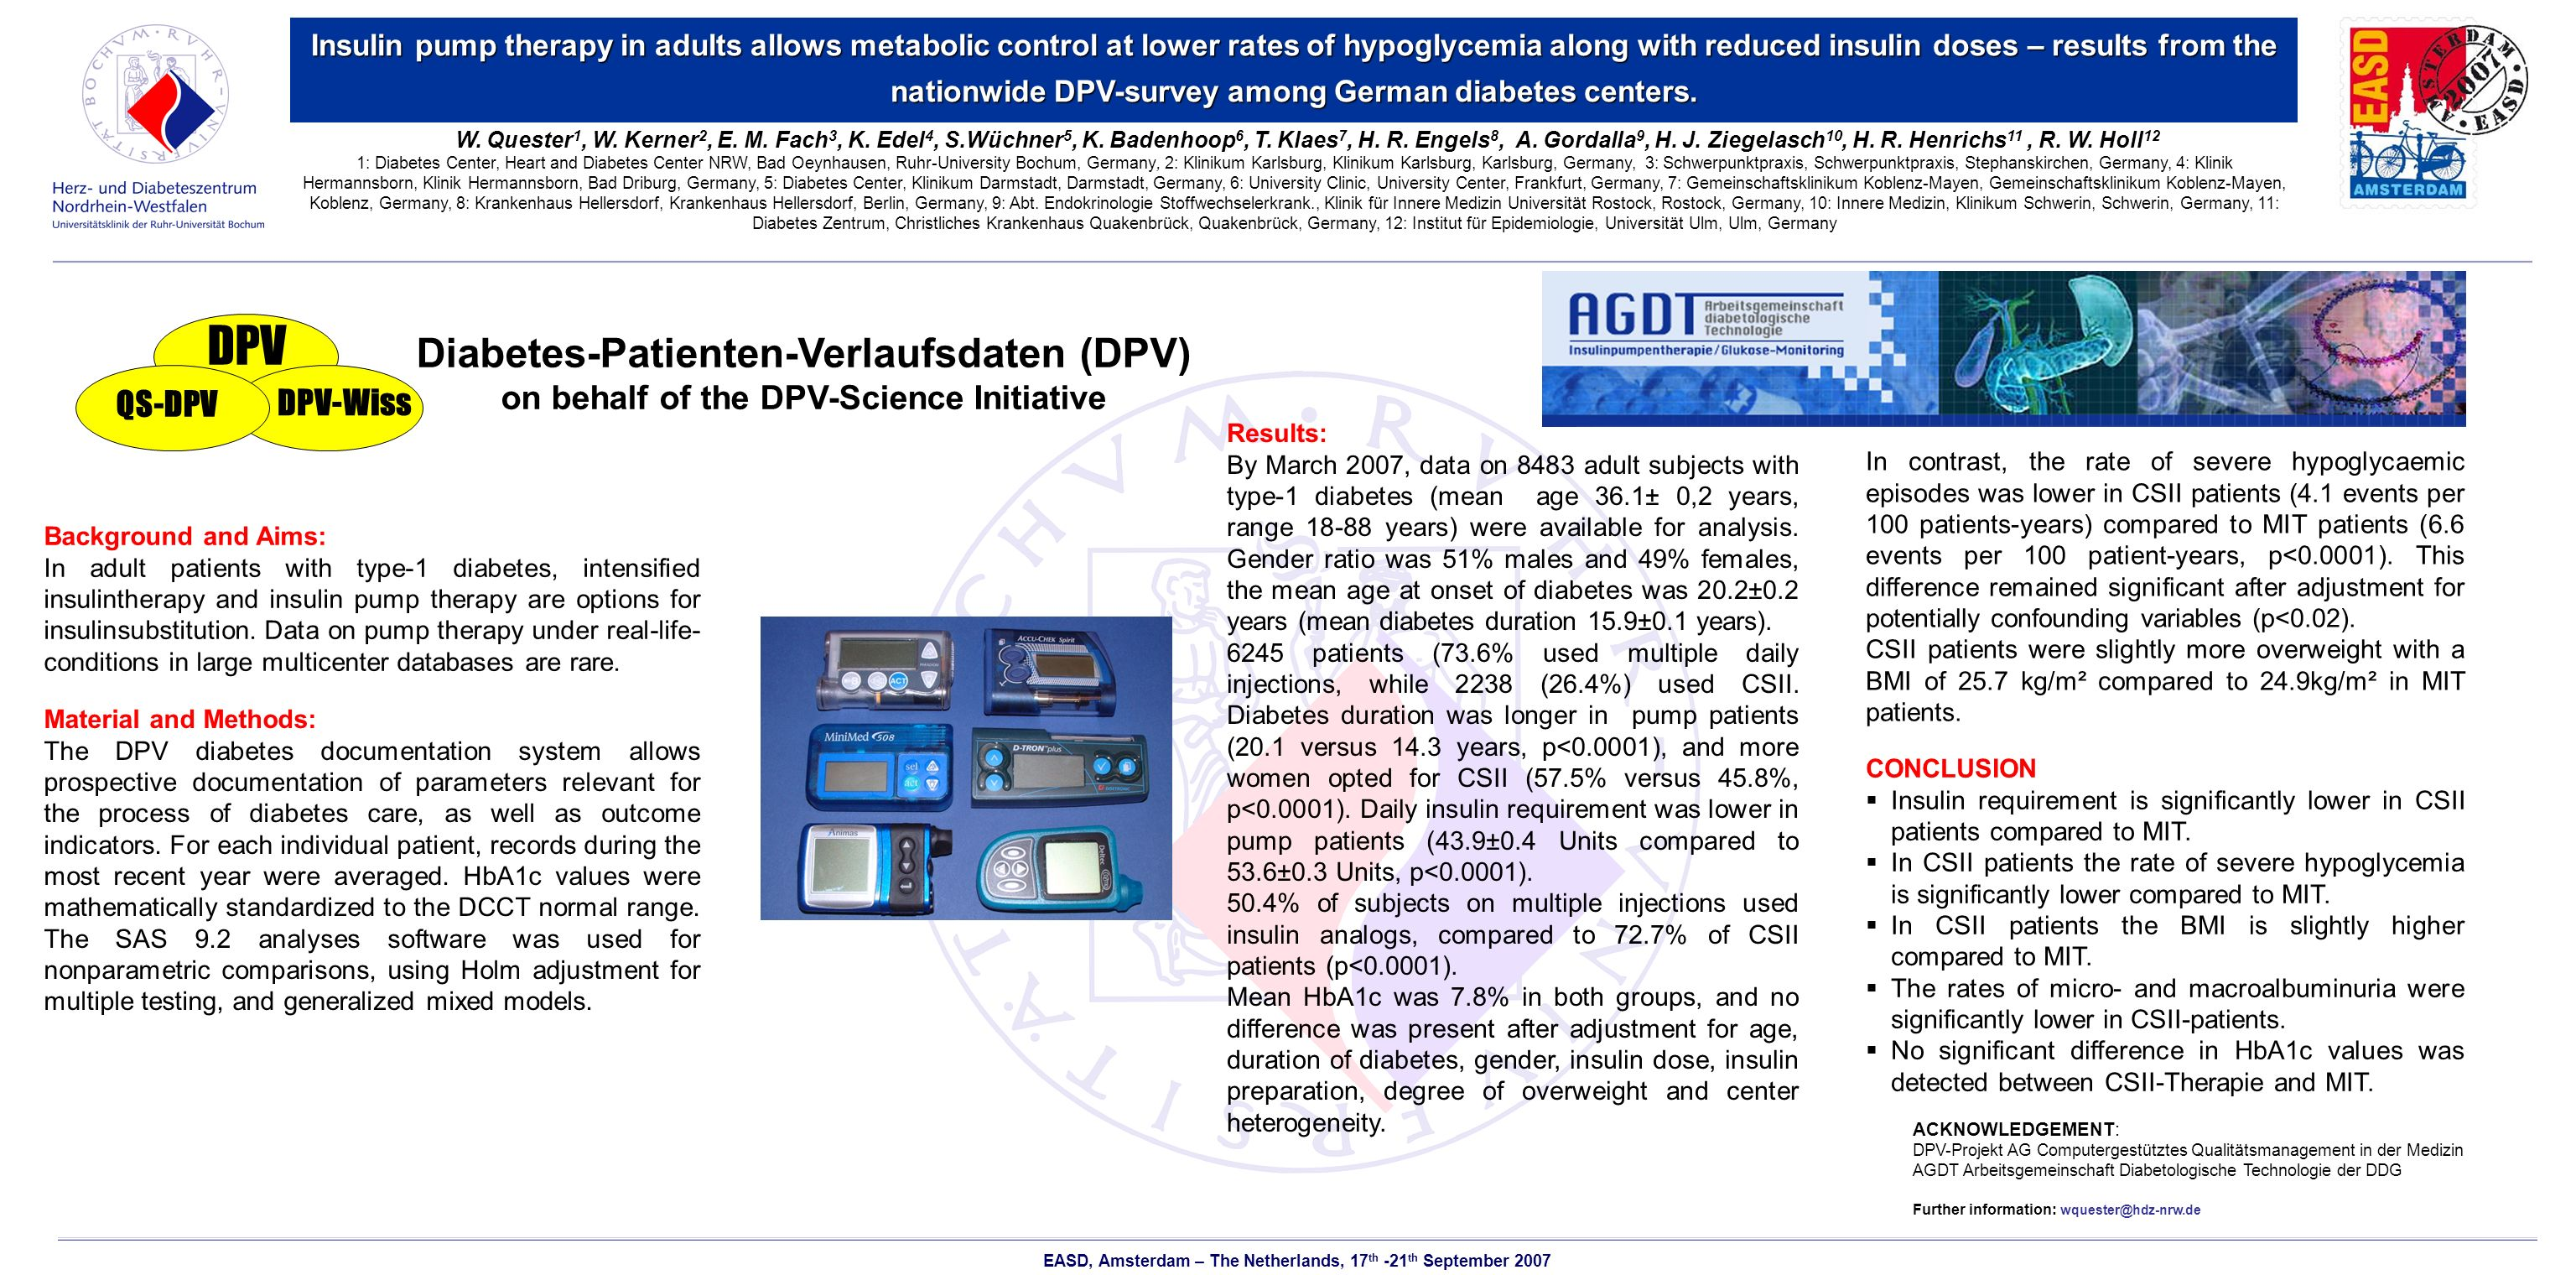 Insulin pump therapy in adults allows metabolic control at lower rates of hypoglycemia along with reduced insulin doses – results from the nationwide DPV-survey among German diabetes centers.